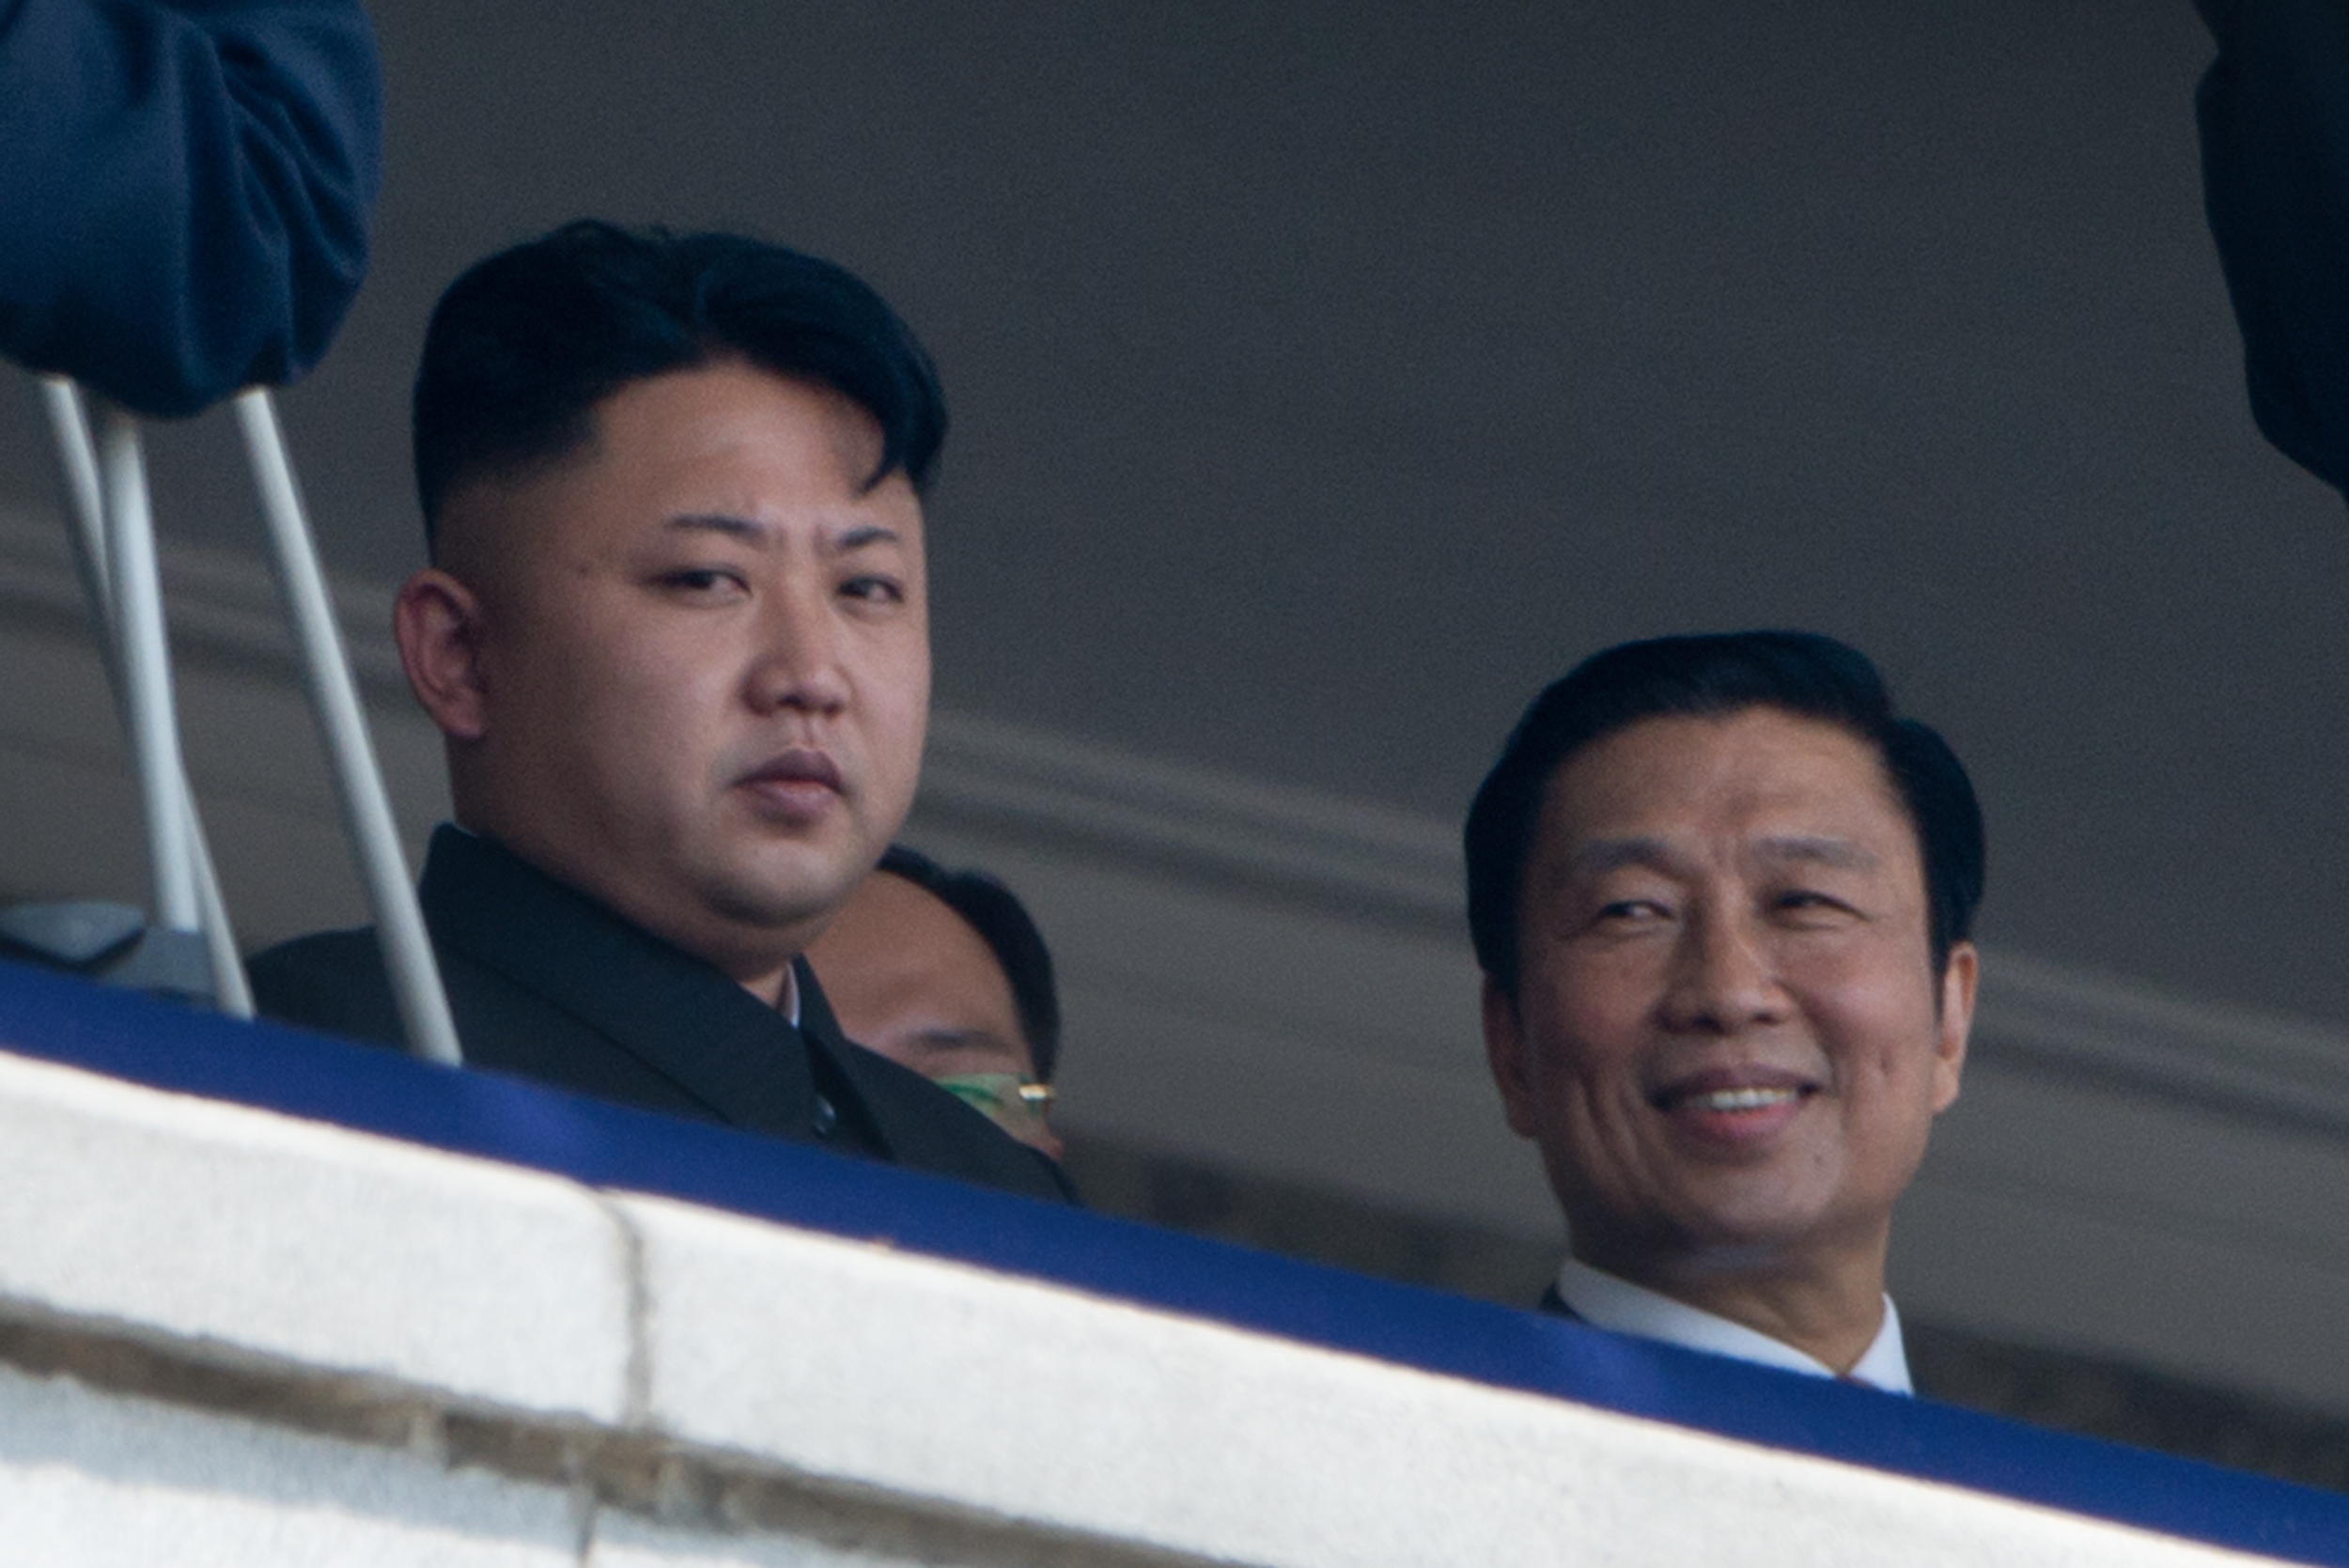 North Korean leader Kim Jong-Un (left) sits with Chinese Vice President Li Yuanchao during a July parade in Pyongyang. China's zeal for quickly resuming frozen nuclear negotiations with the North is not shared by the United States and other participating countries, some analysts say (Ed Jones/AFP/Getty Images).